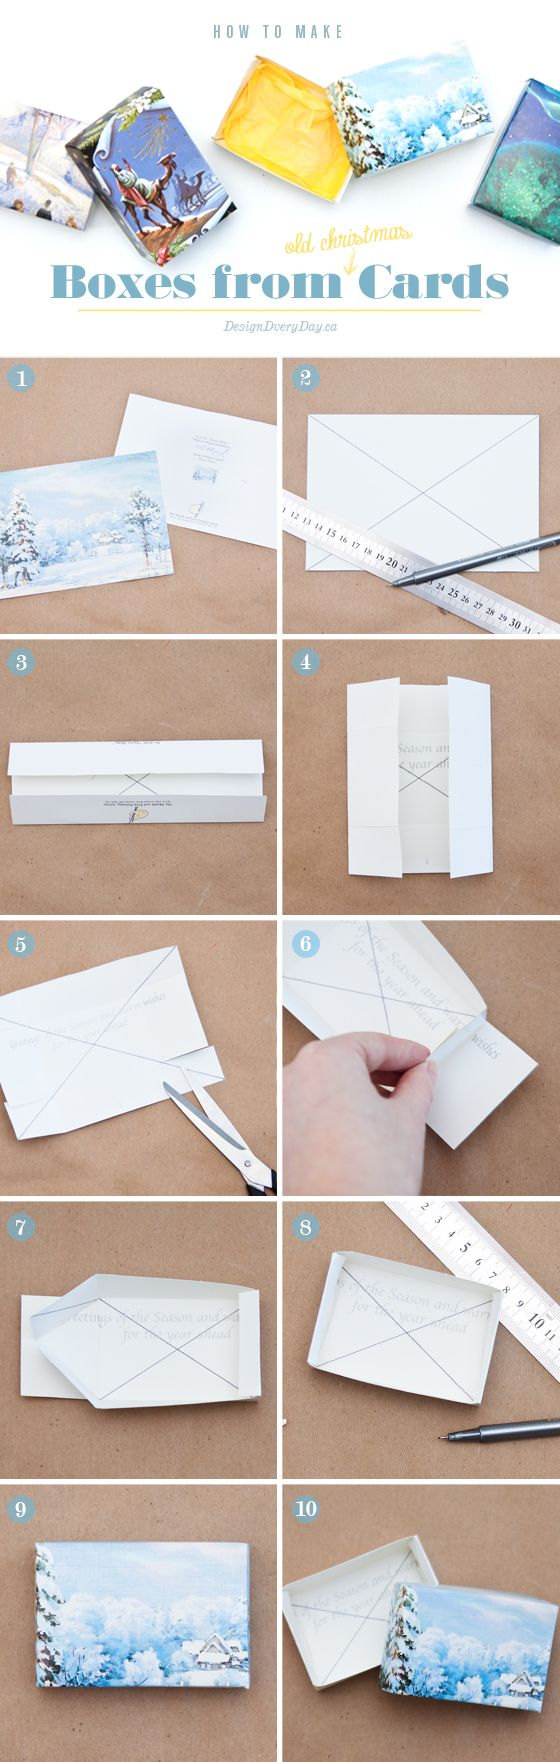 DIY: how to make boxes from old christmas cards - perfect for homemade gift giving